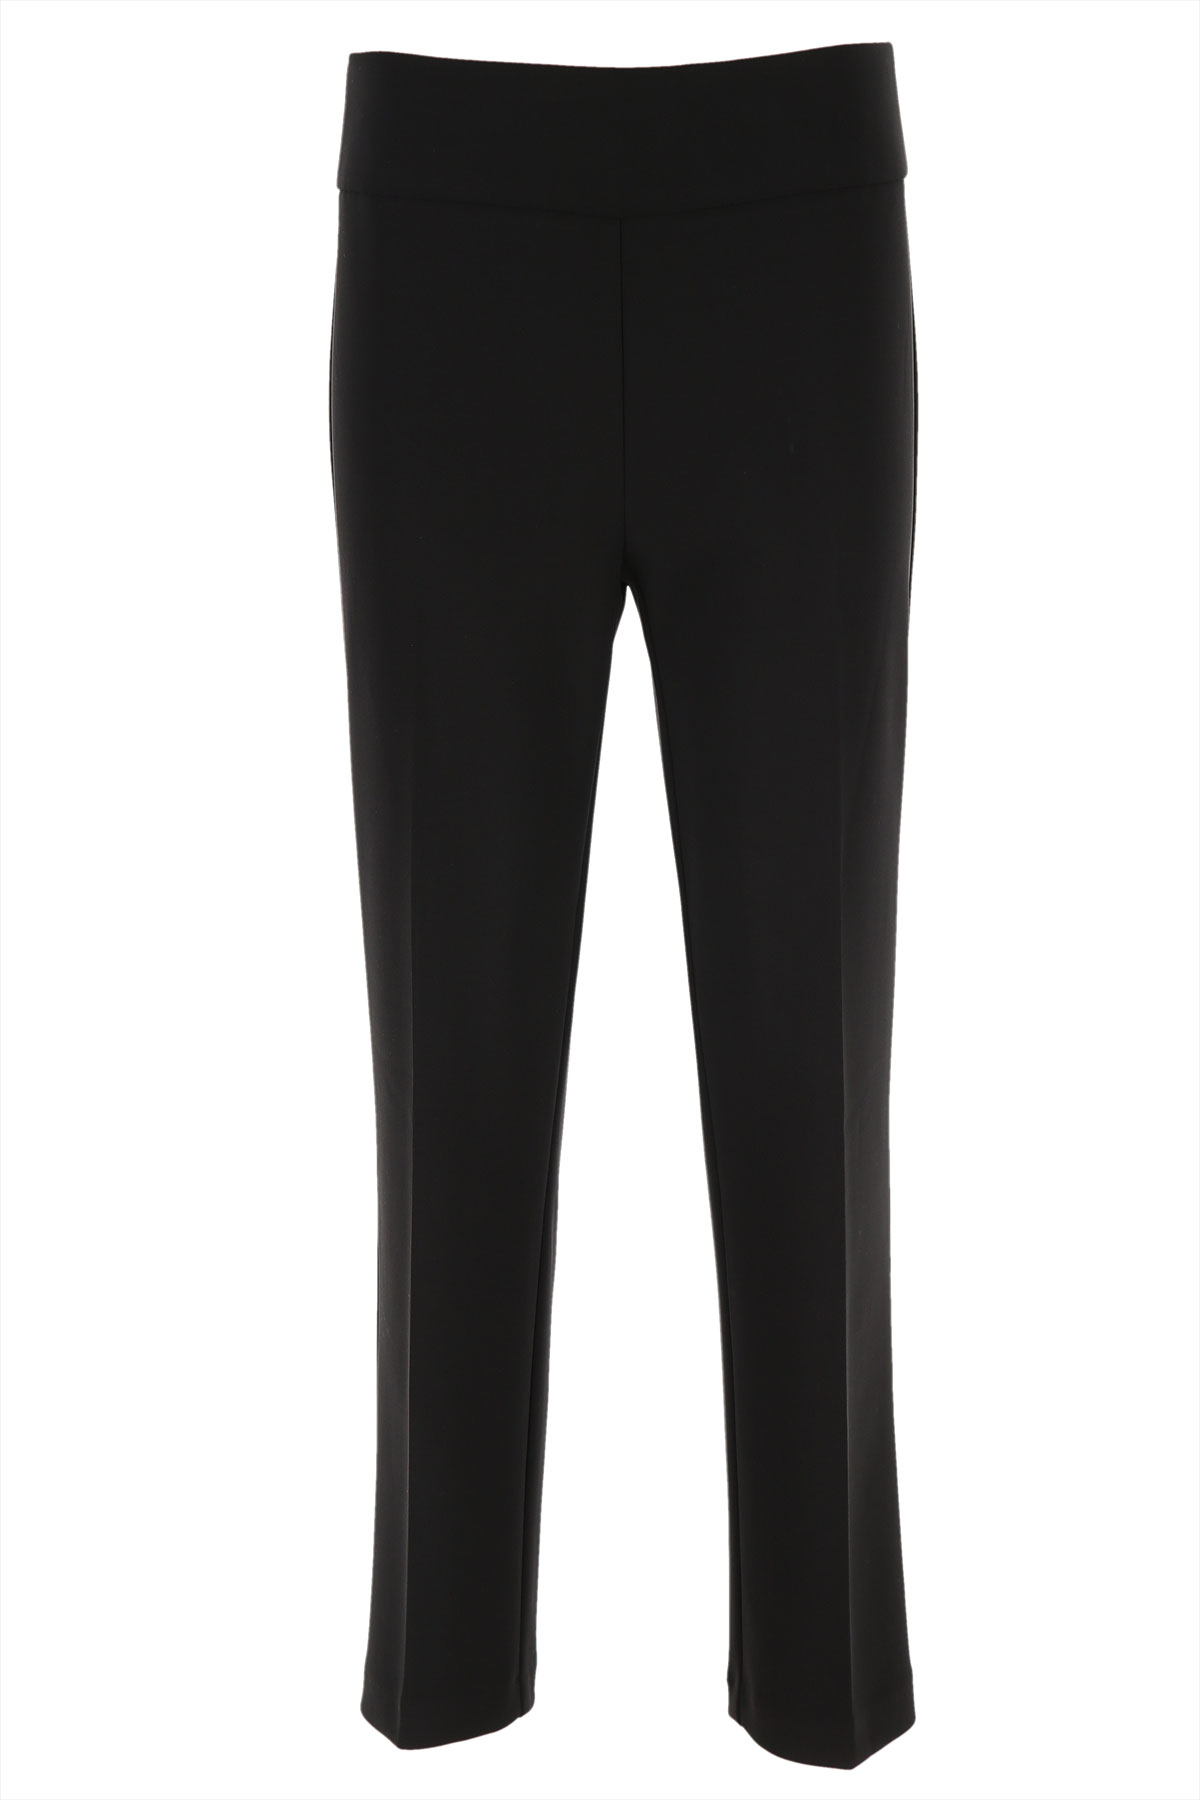 Joseph Ribkoff Pants for Women On Sale, Black, viscosa, 2019, 32